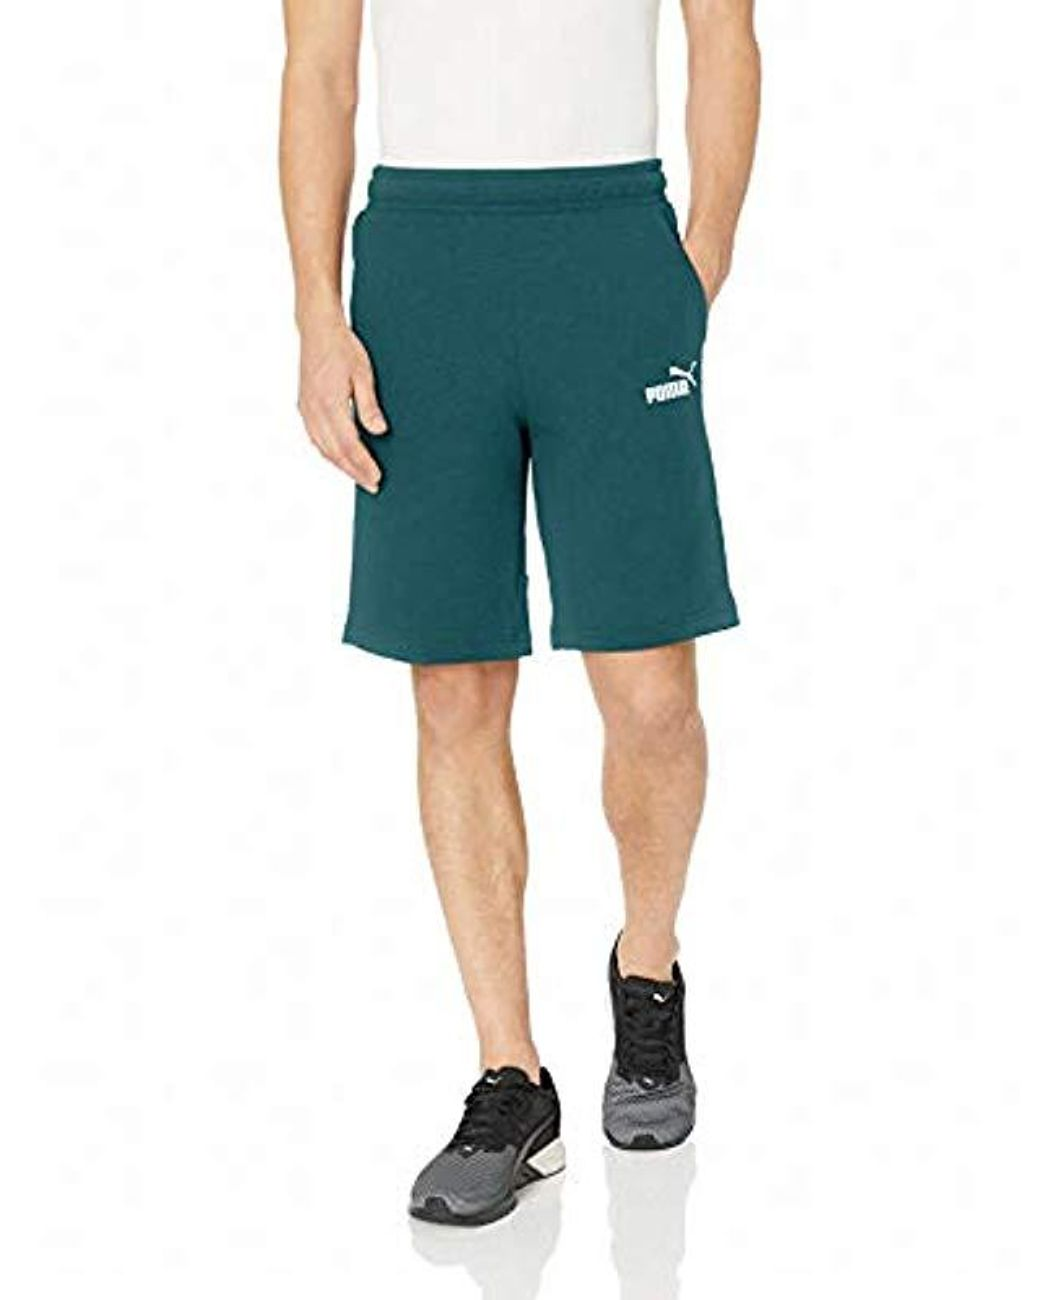 PUMA Last Lap 2 in 1 Training Shorts, Black | Sport outfits